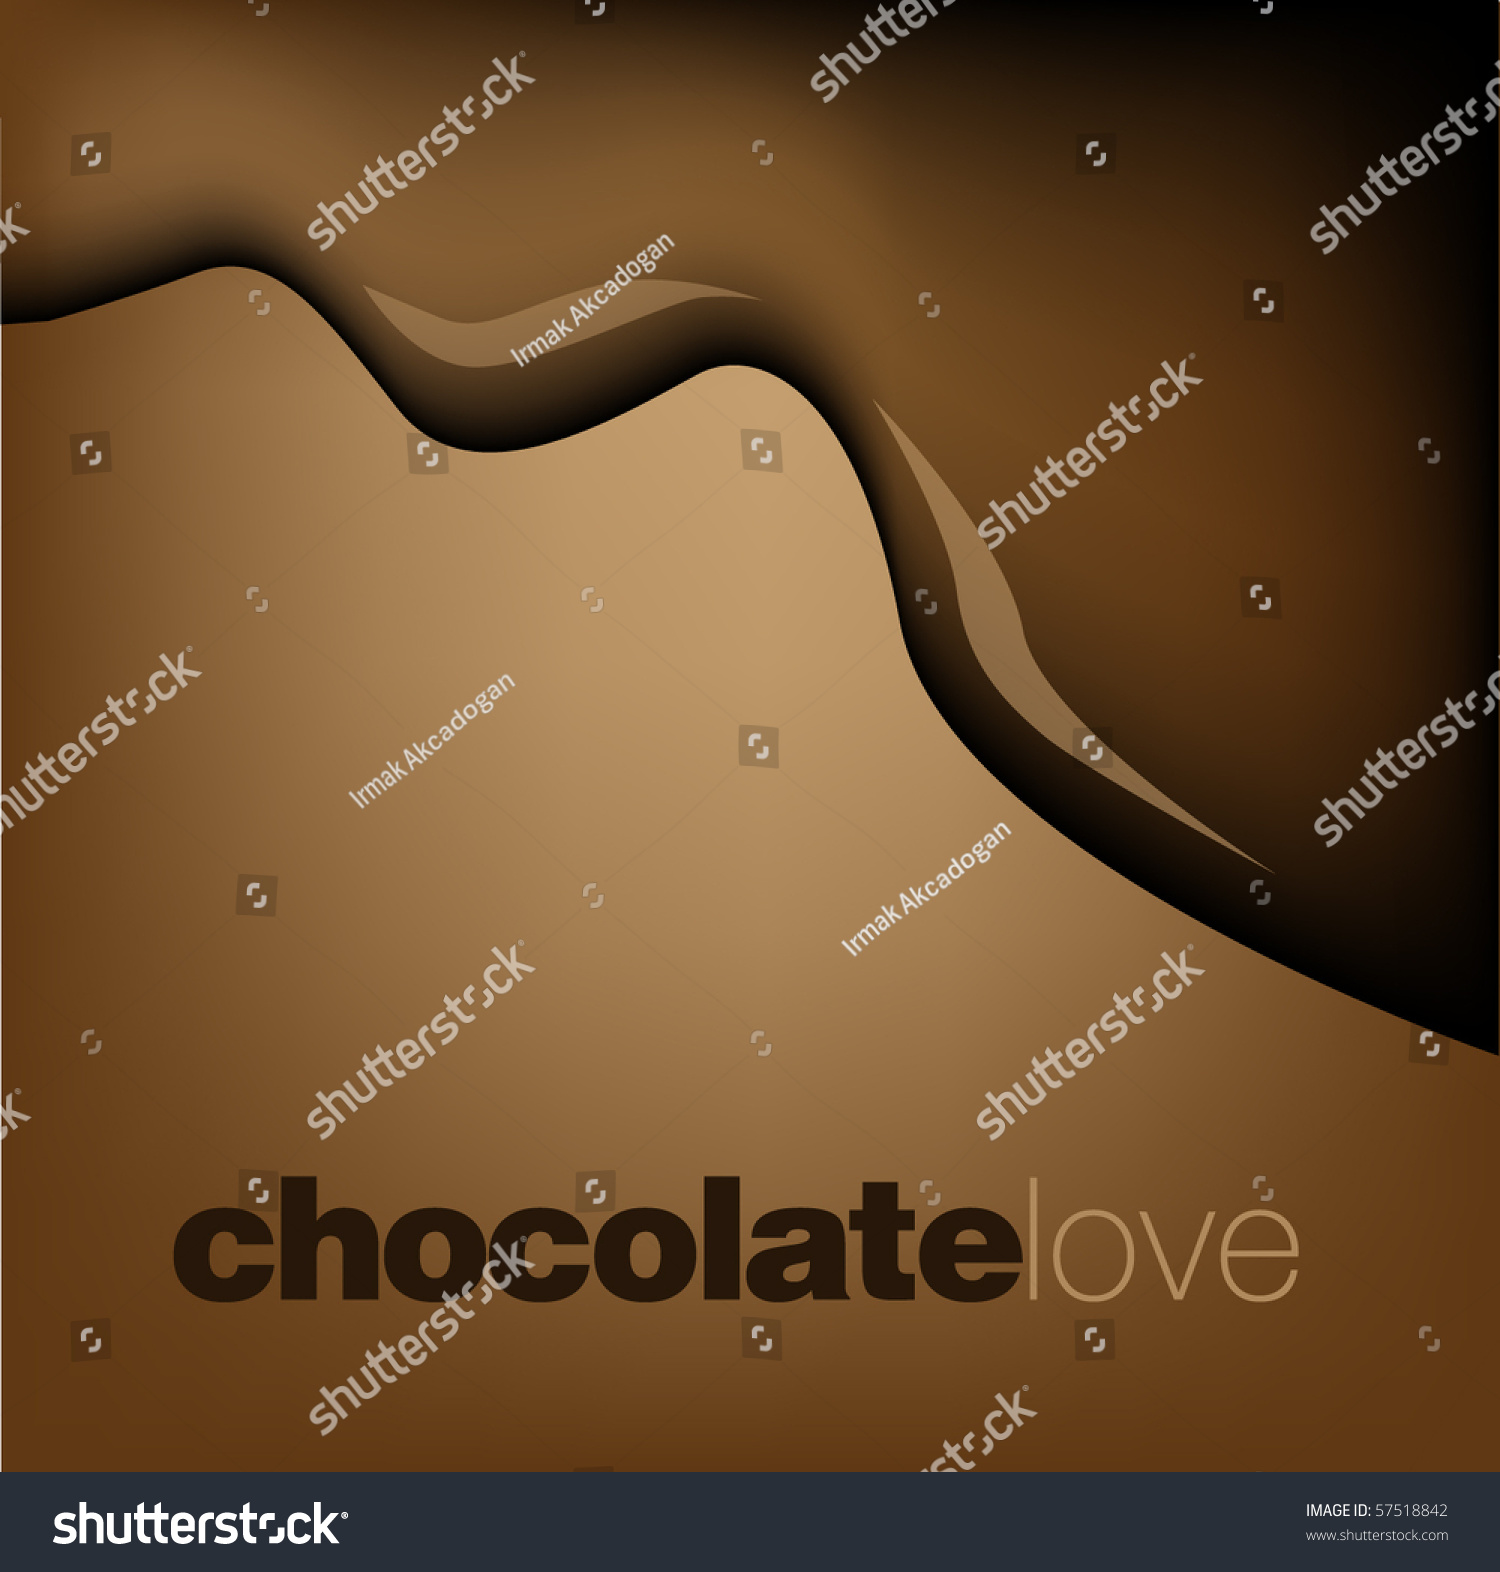 Chocolate Drop Stock Vector 57518842 - Shutterstock